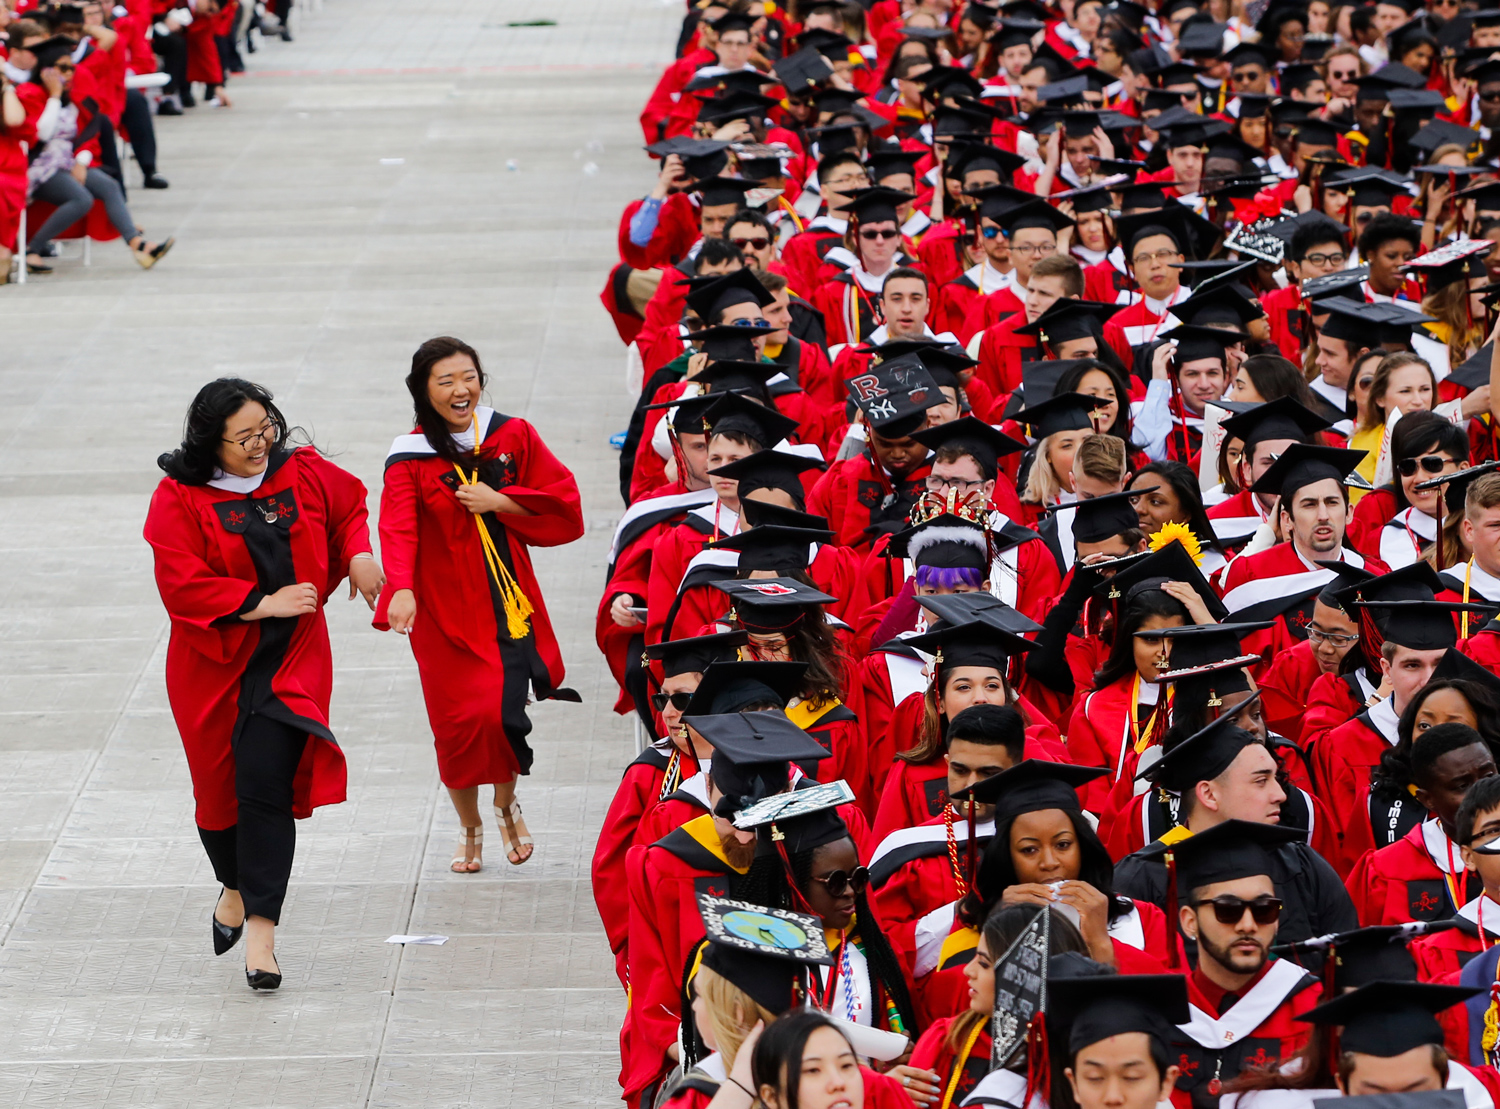 How Should the U.S. Government Treat Chinese Students in America? |  ChinaFile